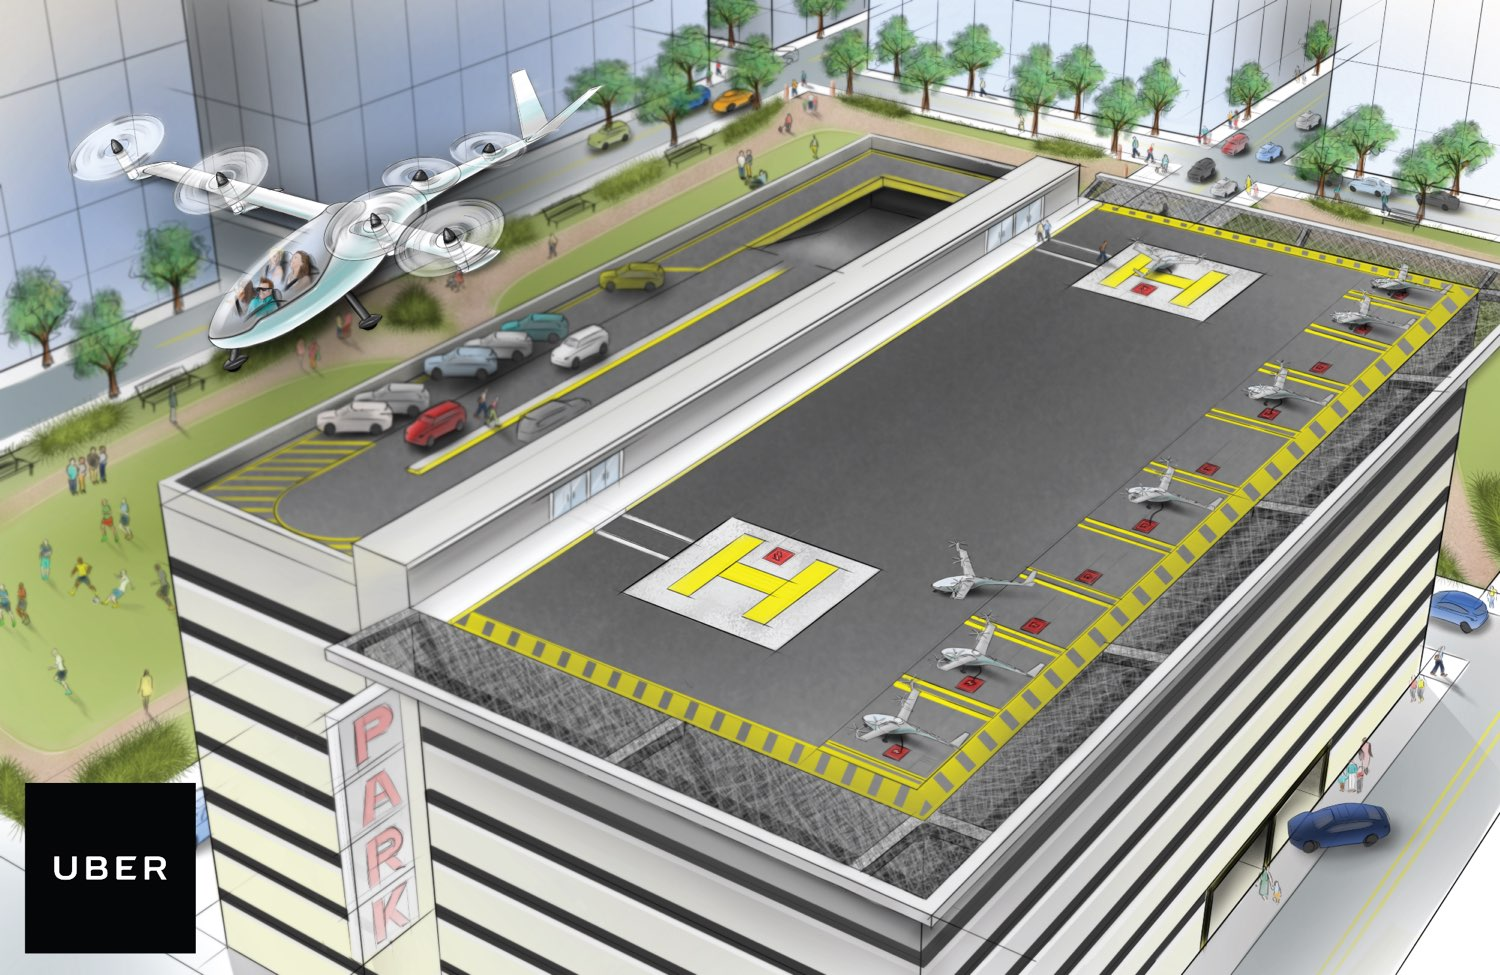 Uber promises flying cars within 10 years